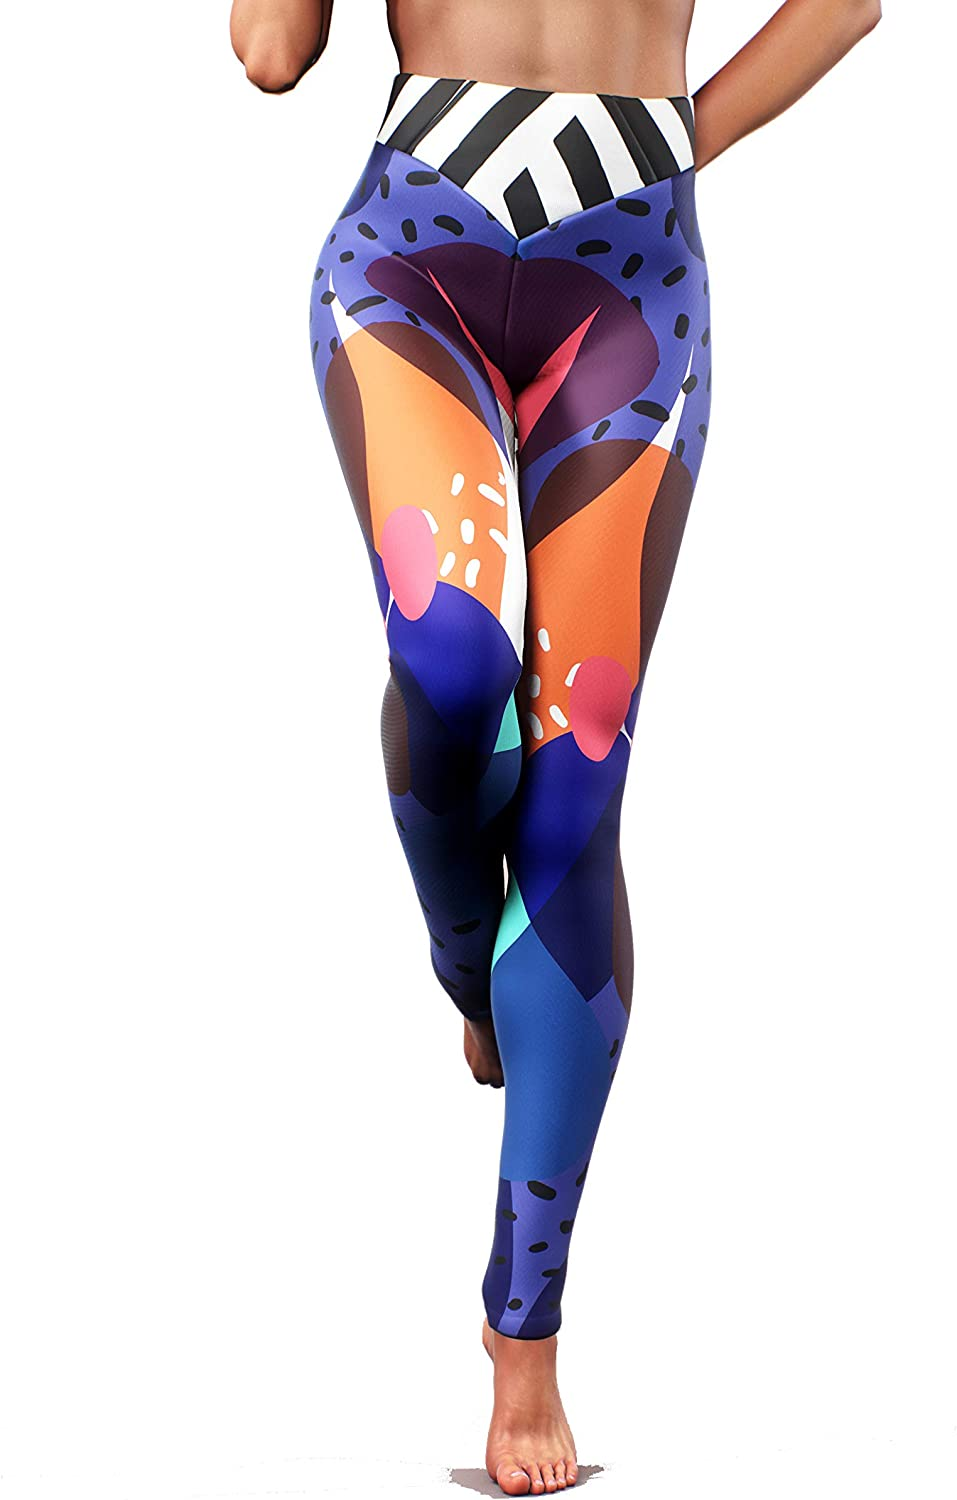 Booty Sculpted Berry Smoothie Leggings Attention brand 2021new shipping free Pants Yoga Blue O Women